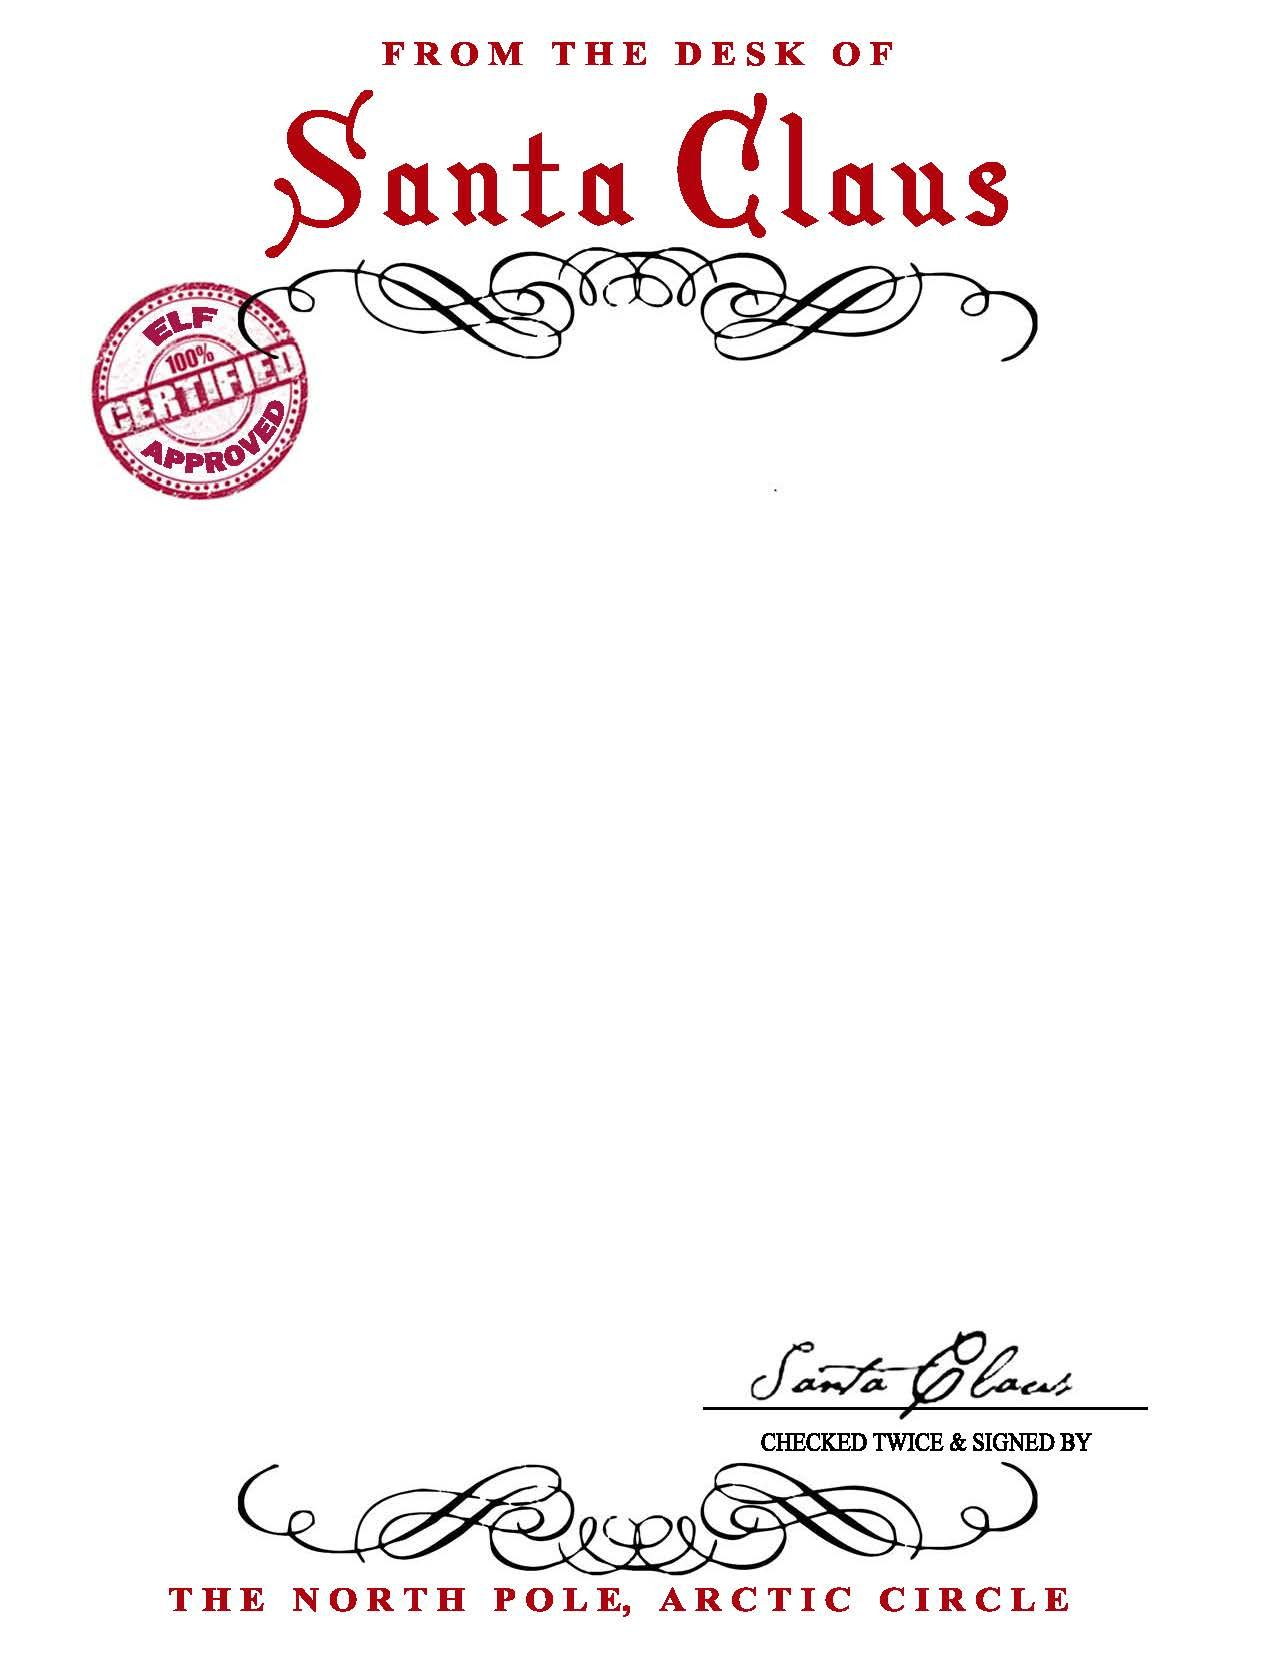 Custom Letter From Santa Template - Santa Claus Letterhead Will Bring Lots Of Joy to Children